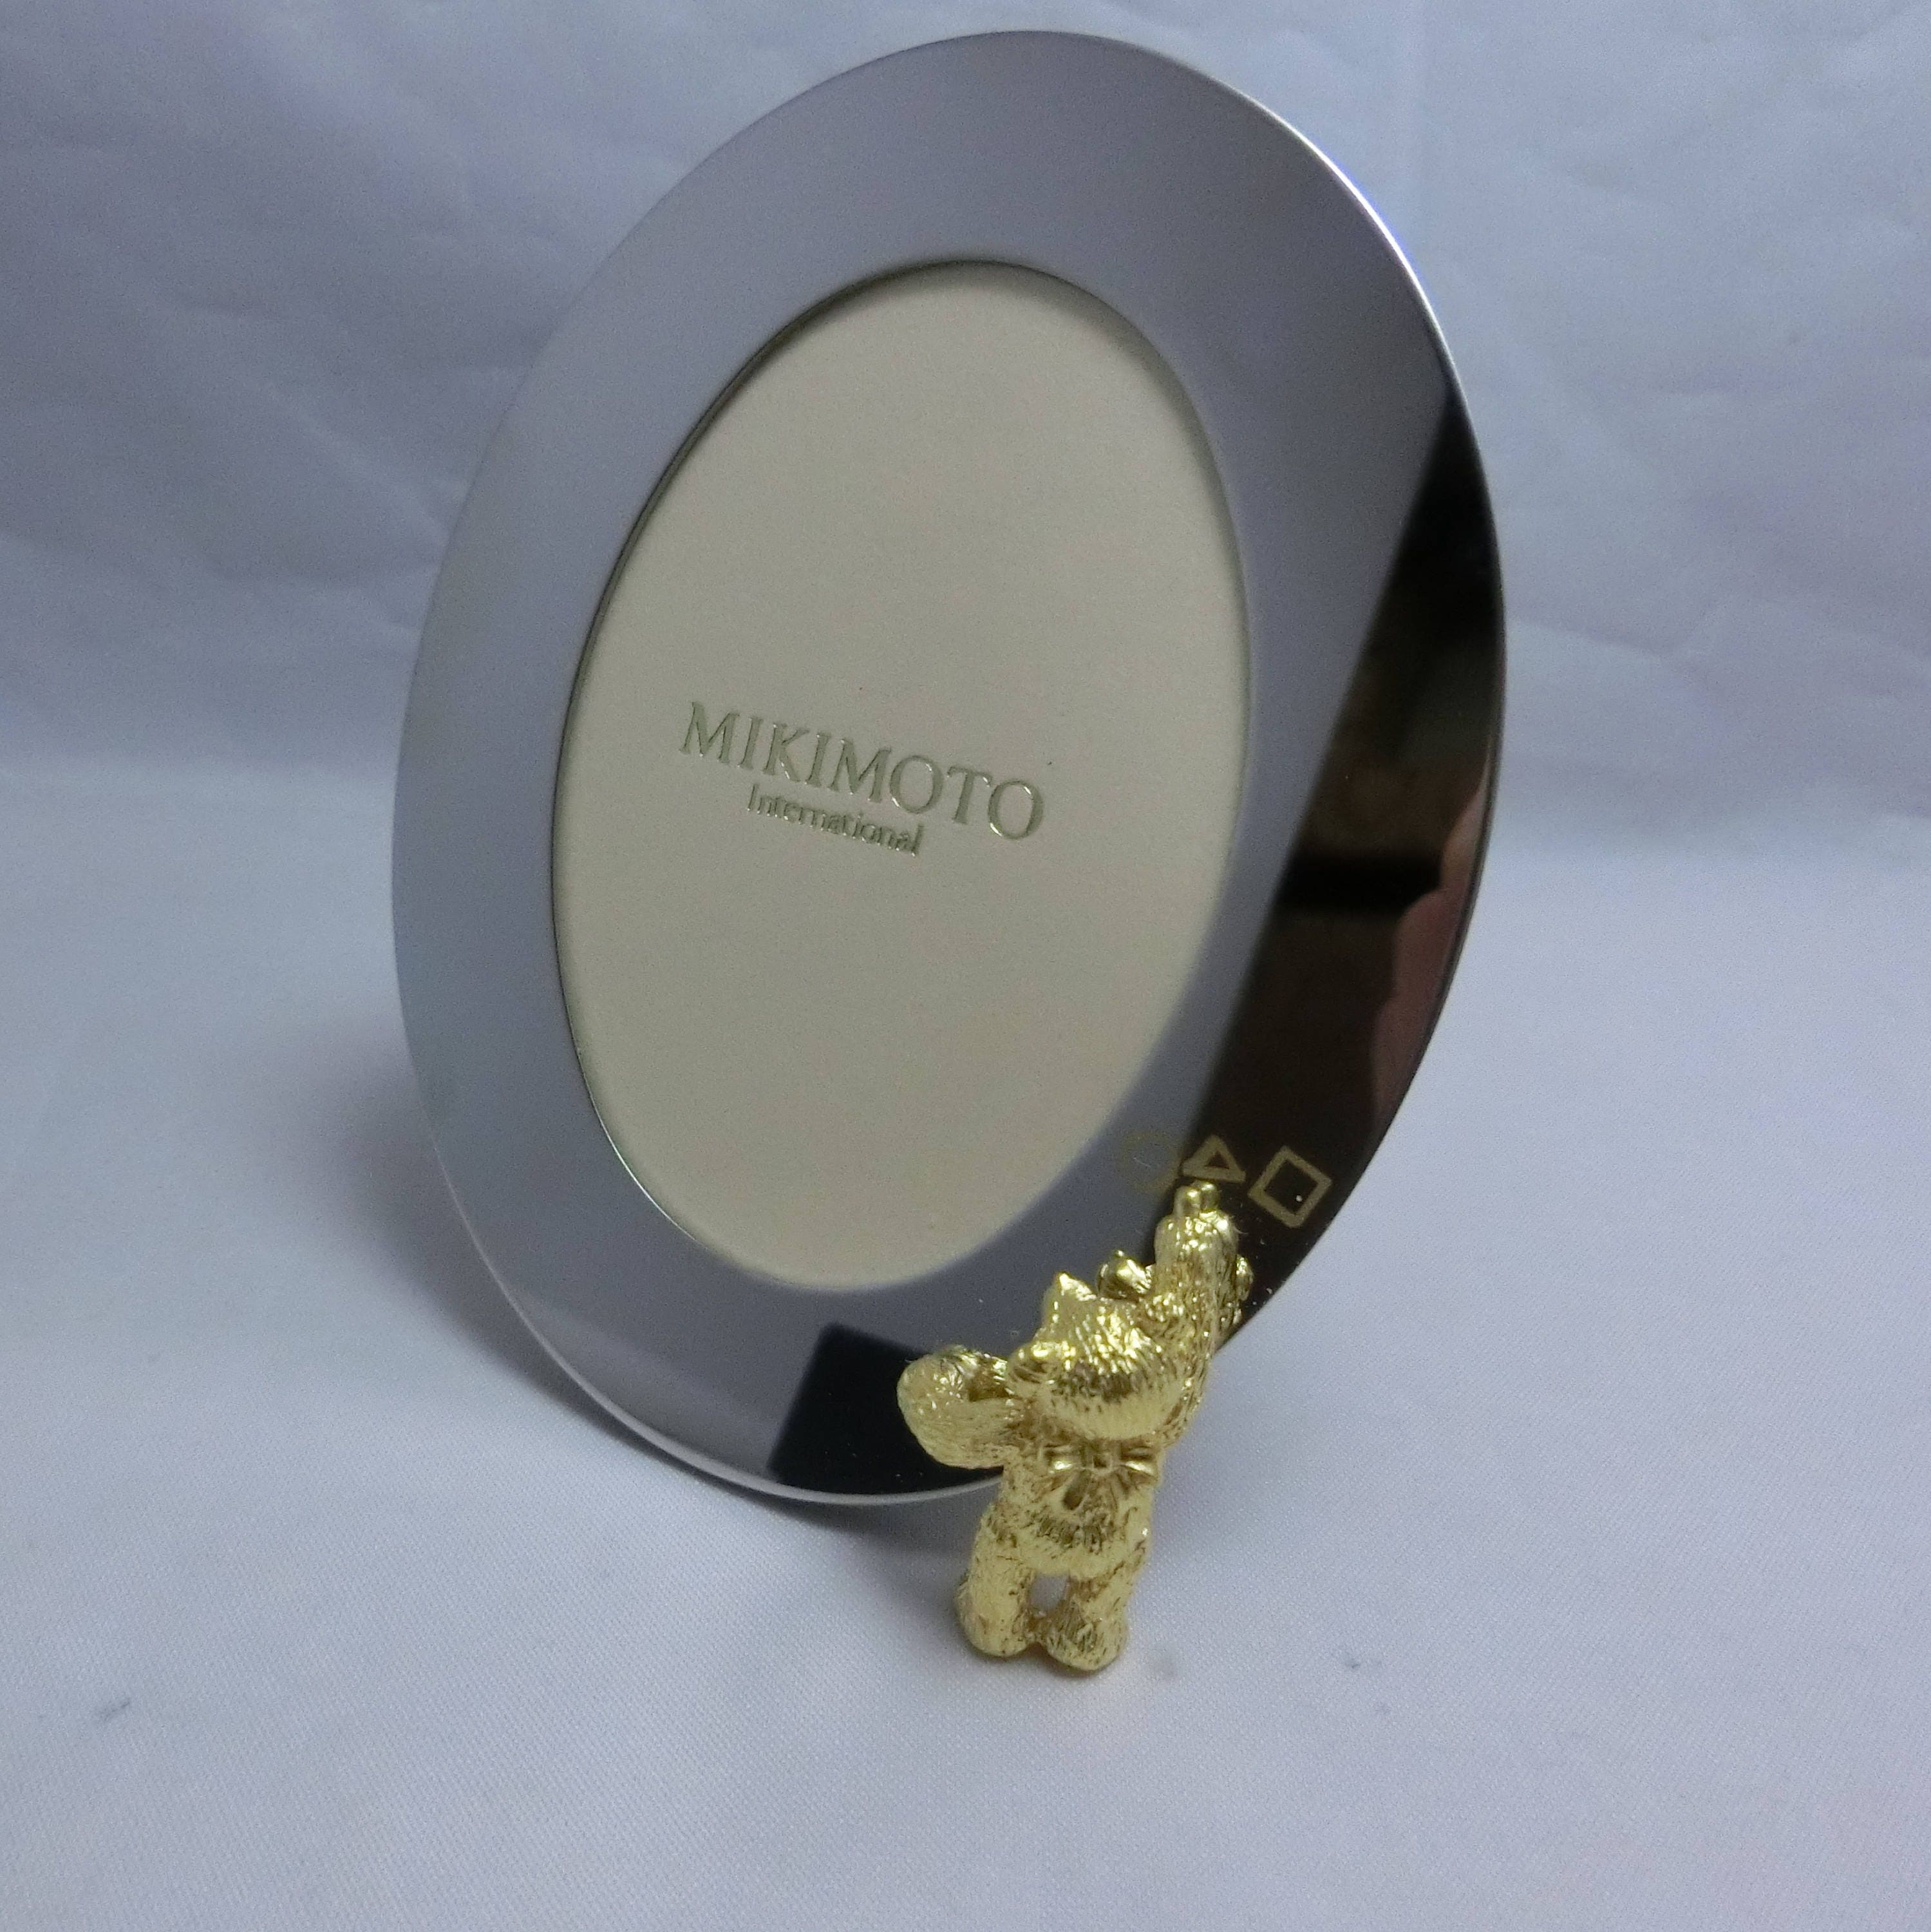 Mikimoto Picture Frame / Photo Frame with Teddy Bear Motif 100 ...